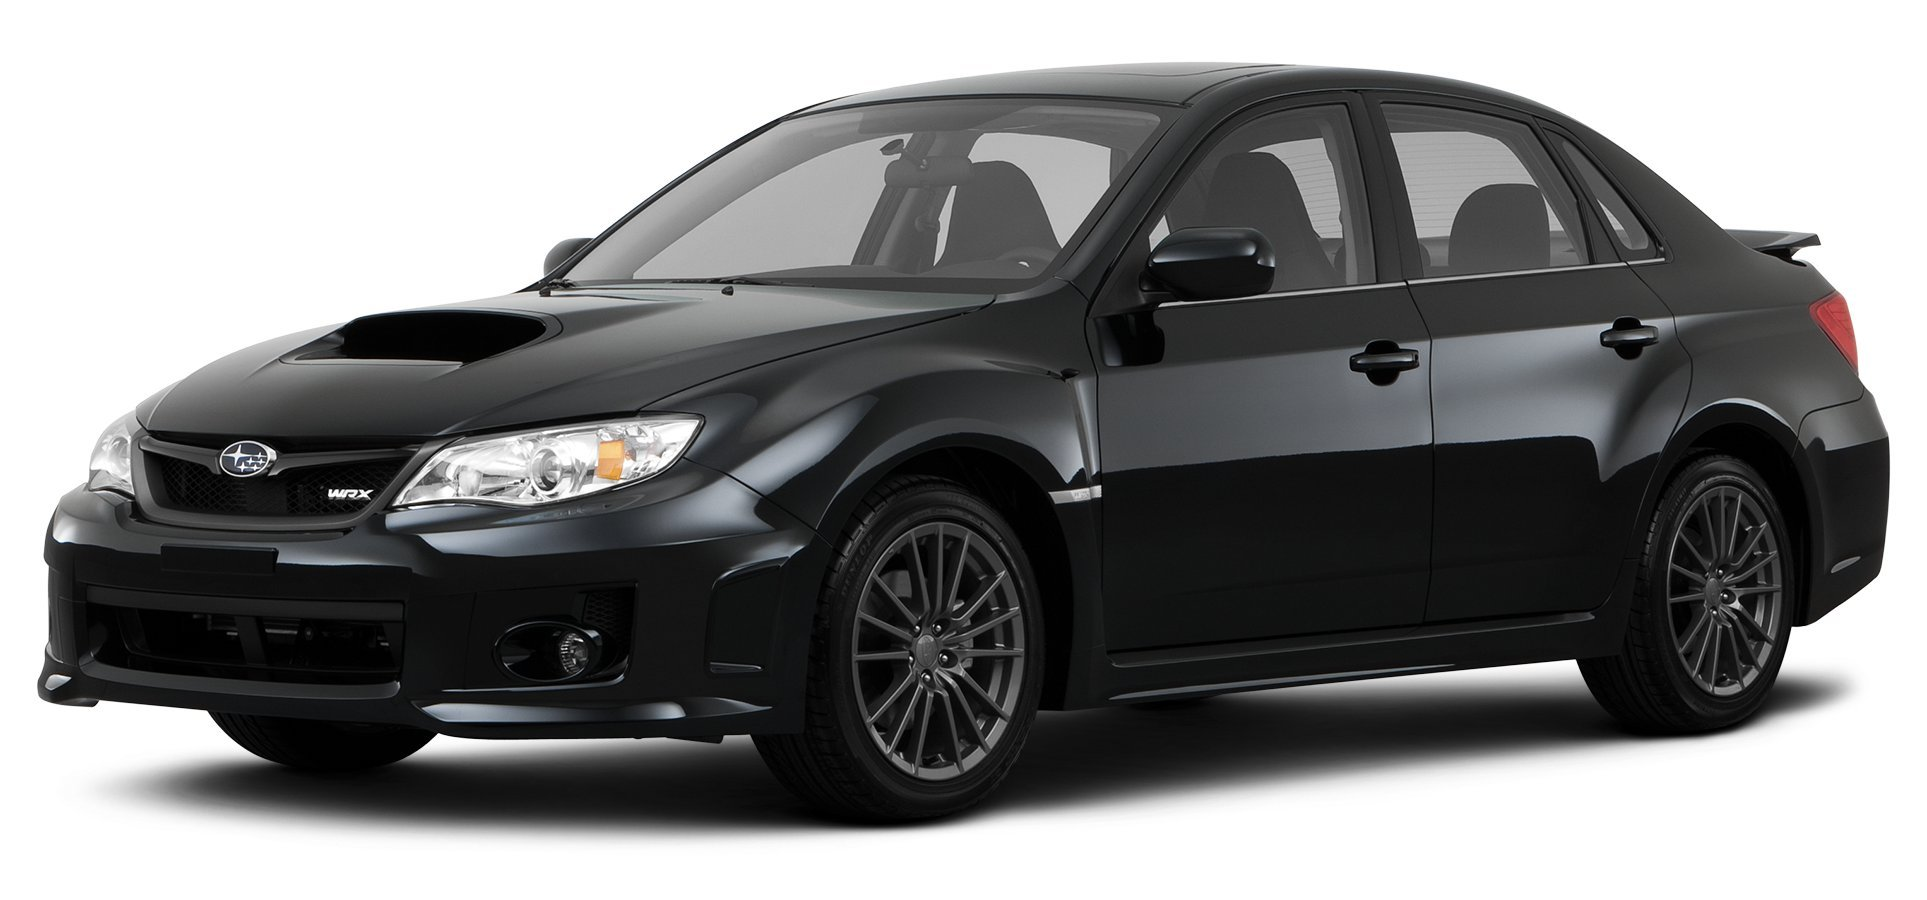 2013 Subaru Impreza Reviews Images And Specs Vehicles Parts Diagram Wrx 4 Door Manual Transmission